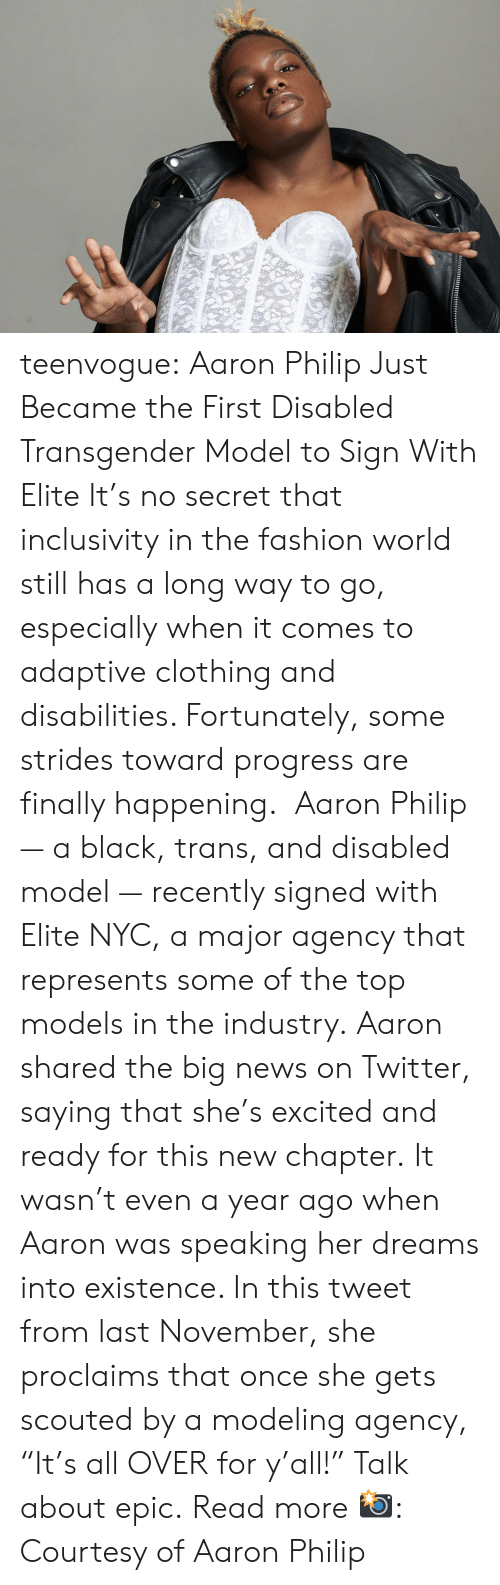 """Ready For This: teenvogue: Aaron Philip Just Became the First Disabled Transgender Model to Sign With Elite It's no secret that inclusivity in the fashion world still has a long way to go, especially when it comes to adaptive clothing and disabilities. Fortunately, some strides toward progress are finally happening. Aaron Philip — a black, trans, and disabled model — recently signed with Elite NYC, a major agency that represents some of the top models in the industry. Aaron shared the big news on Twitter, saying that she's excited and ready for this new chapter. It wasn't even a year ago when Aaron was speaking her dreams into existence. In this tweet from last November, she proclaims that once she gets scouted by a modeling agency, """"It's all OVER for y'all!"""" Talk about epic. Read more 📸: Courtesy of Aaron Philip"""